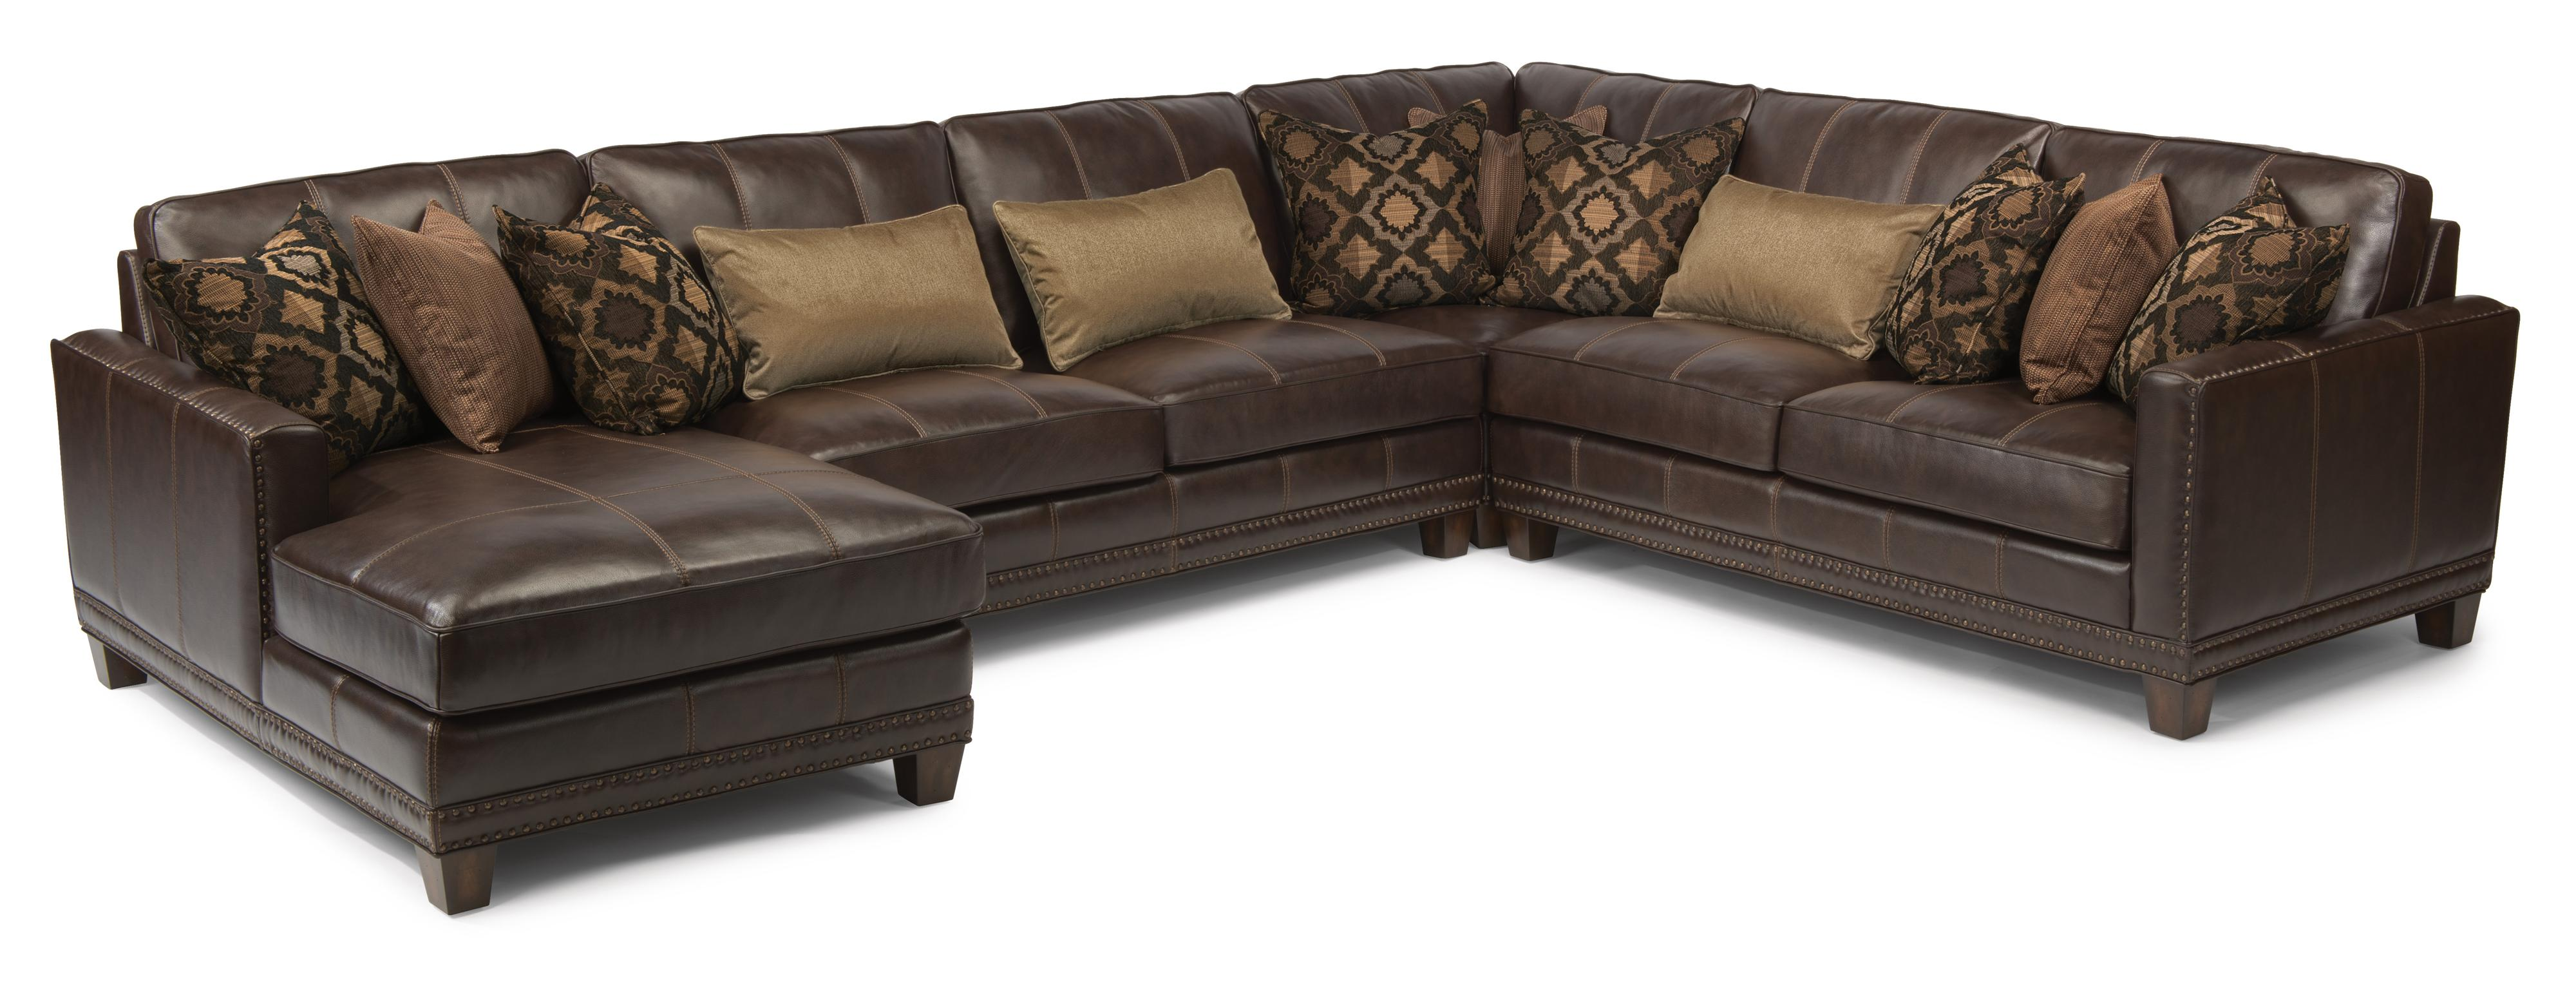 flexsteel sectional sofas sofa couch set latitudes port royal transitional four piece